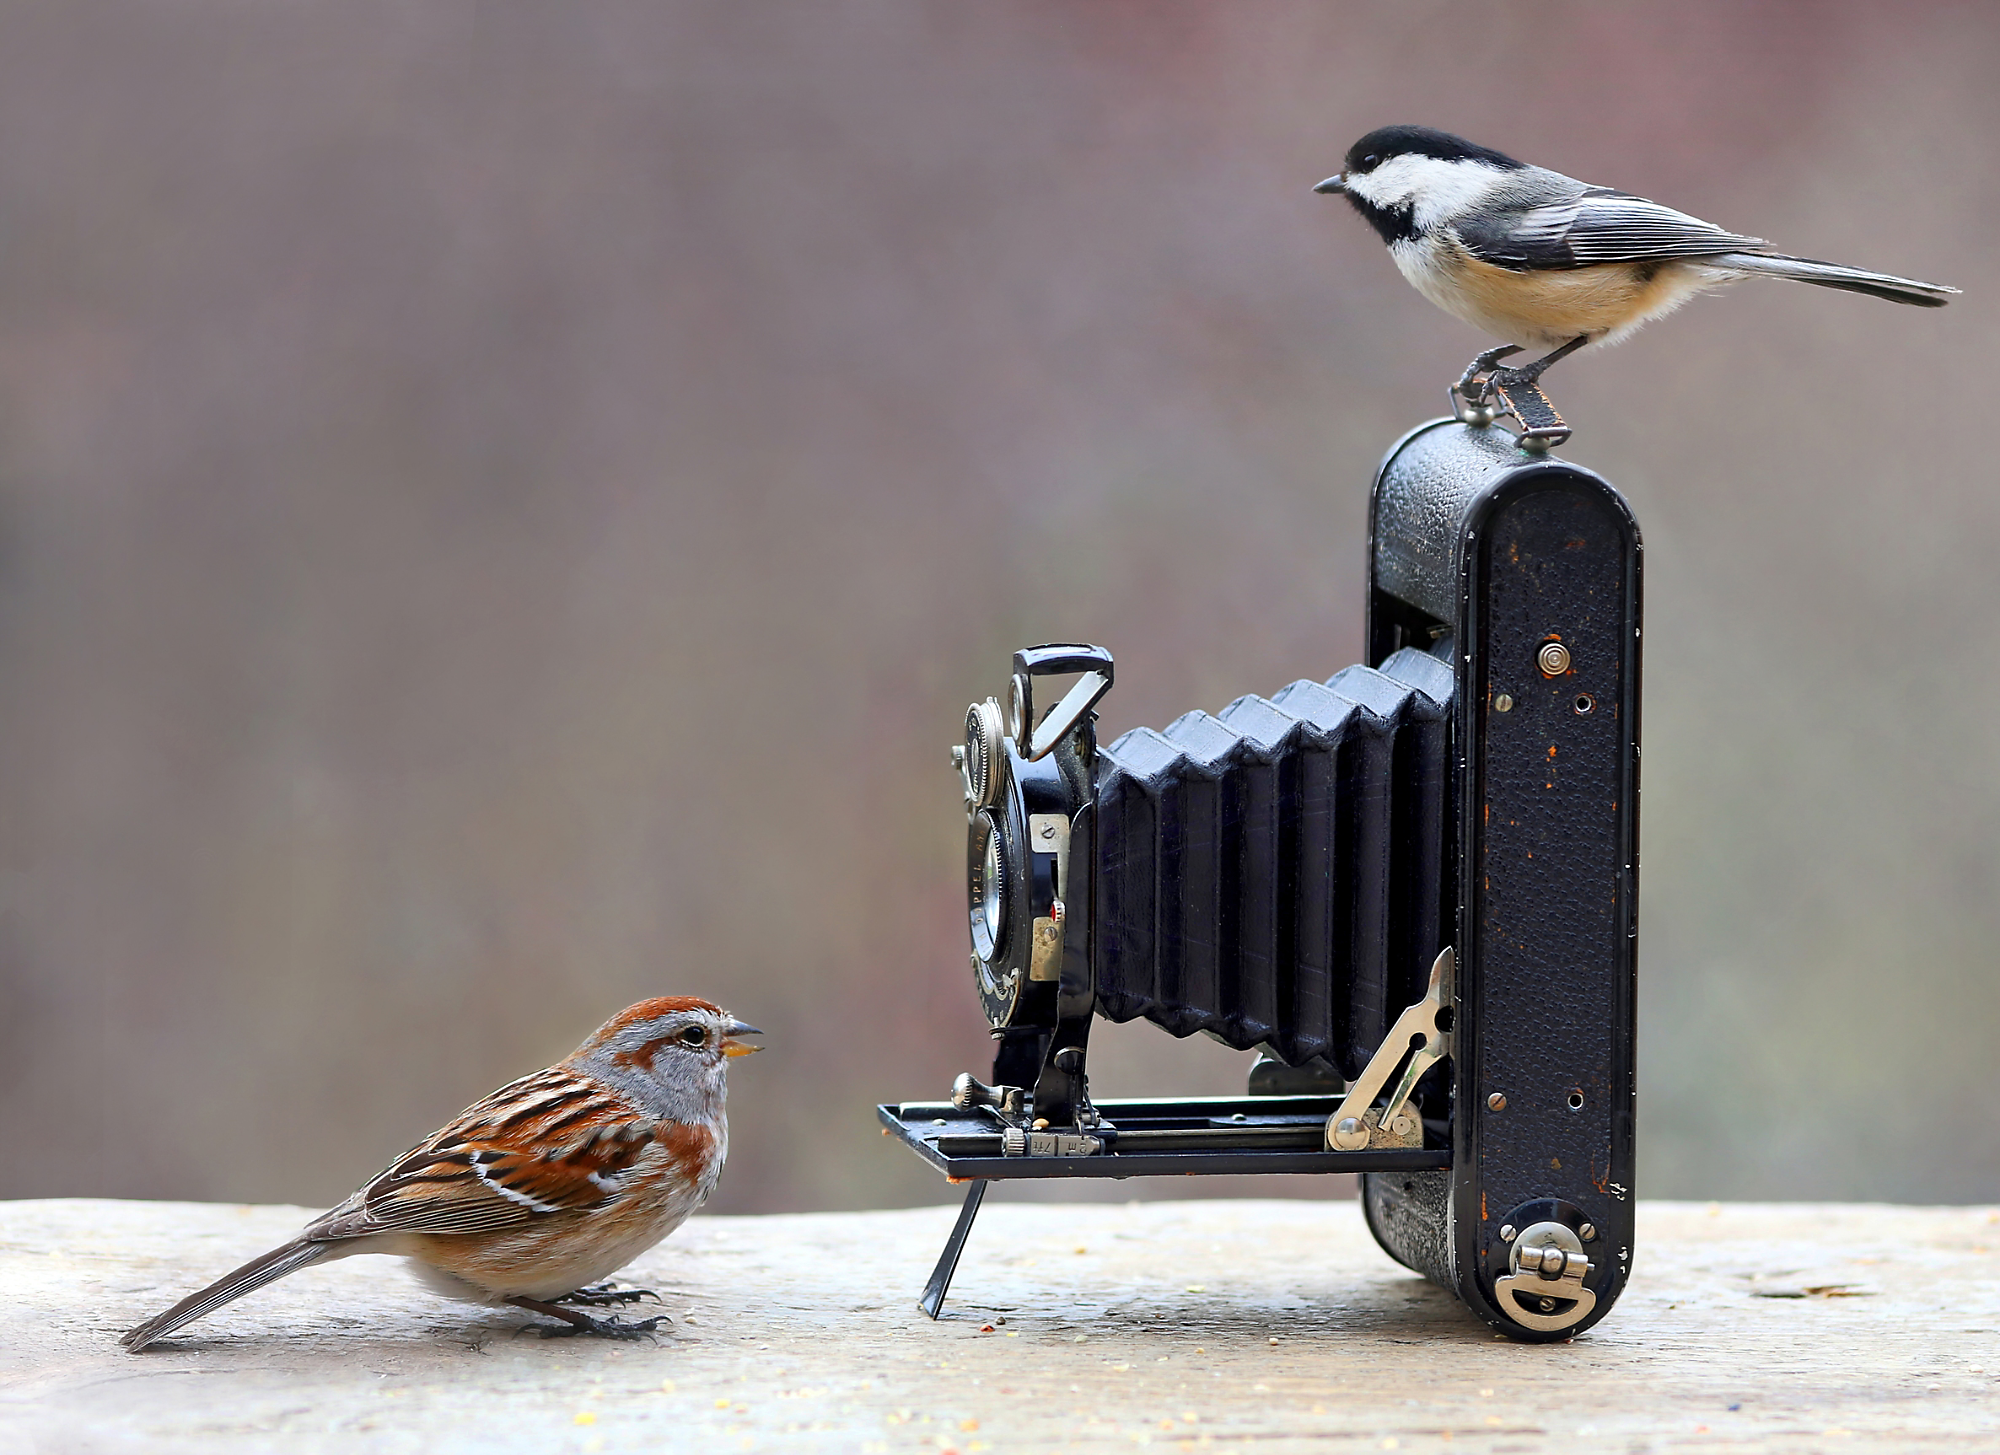 birds on antique camera